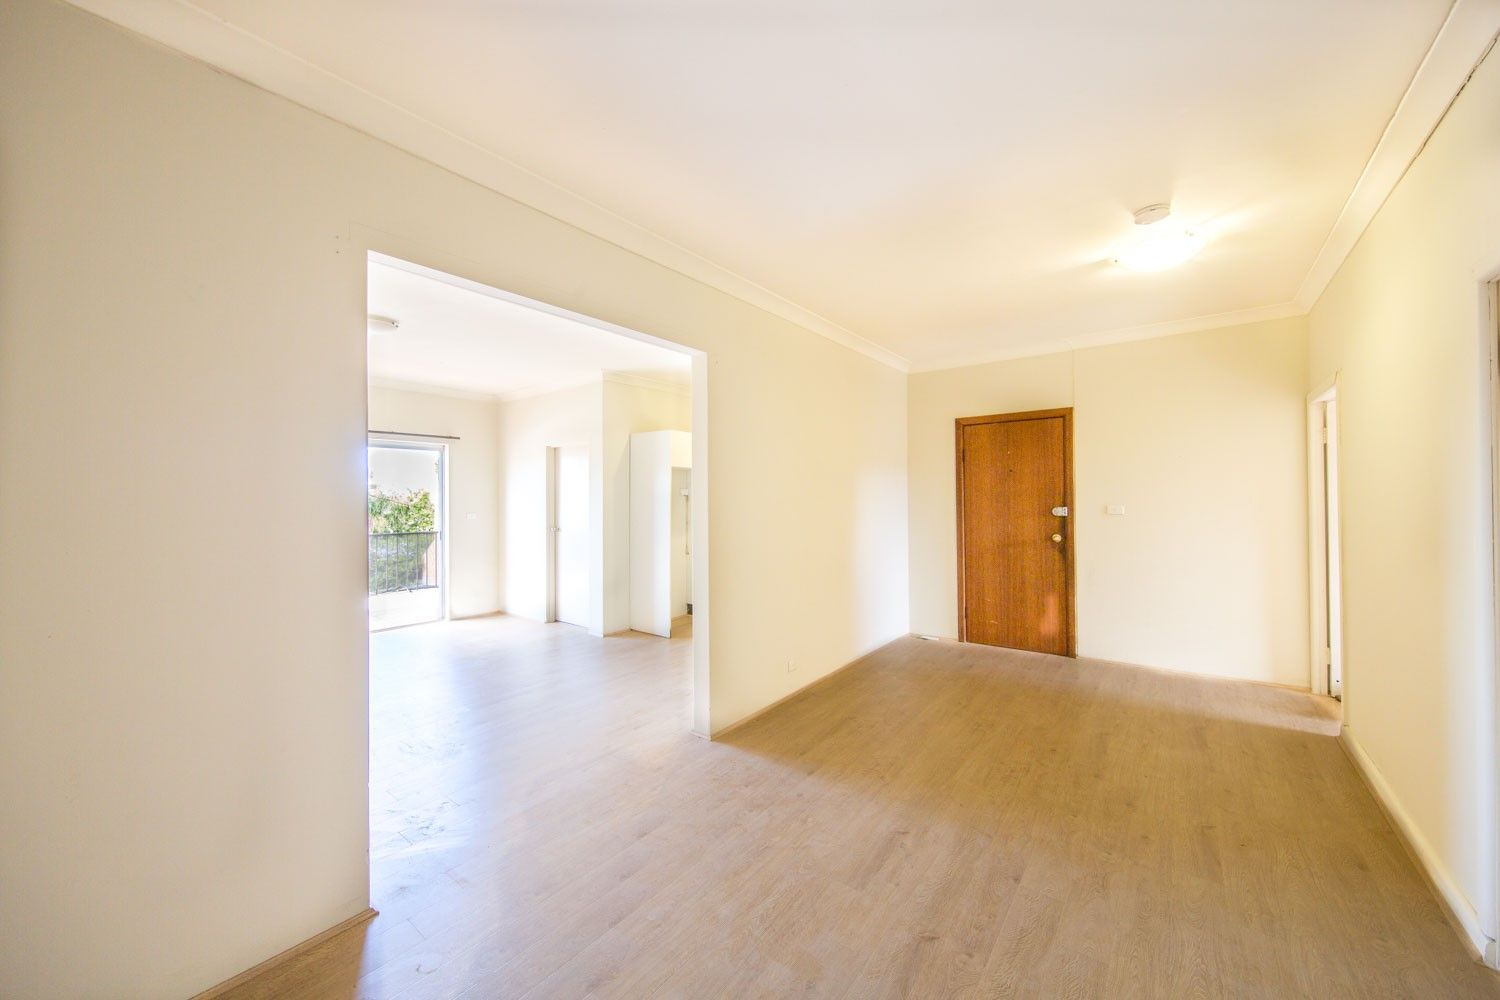 L 1/1010 Pittwater Road, Collaroy NSW 2097, Image 1